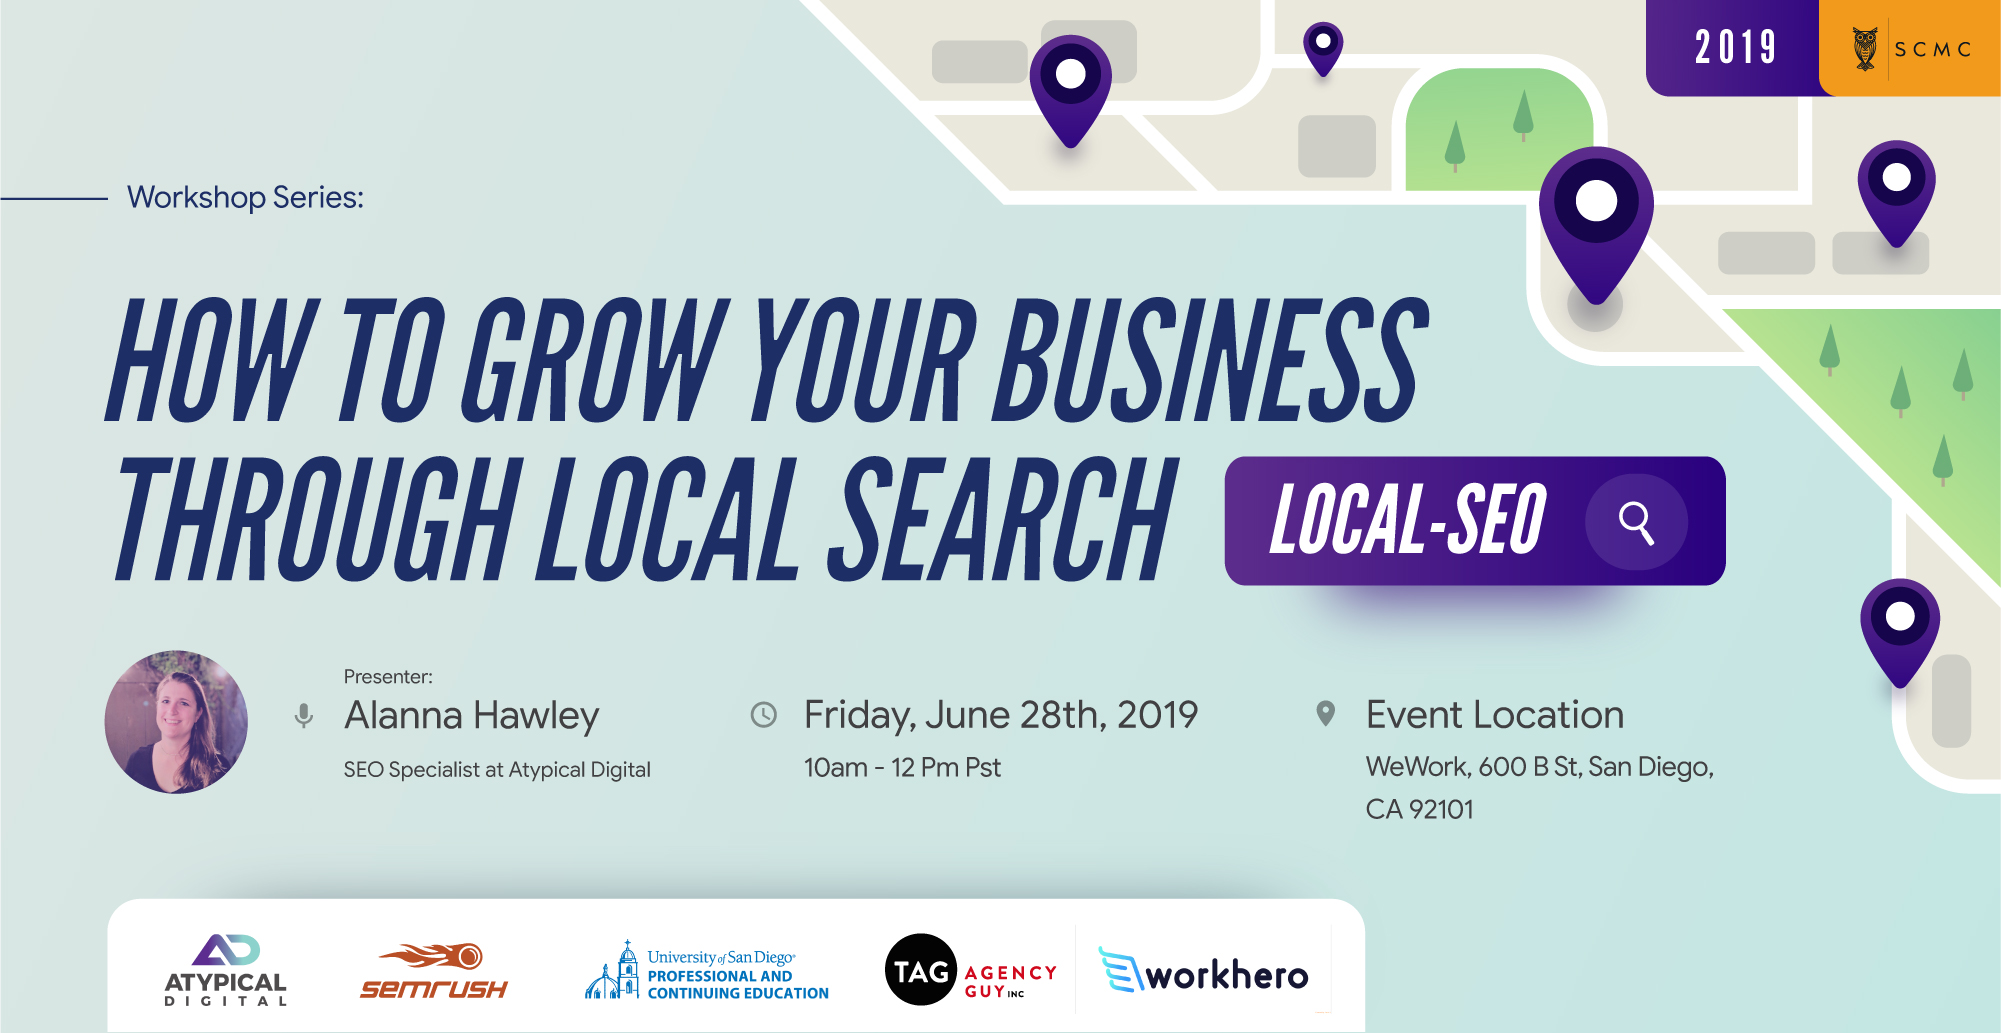 How to Grow Your Business Through Local Search (Local SEO)